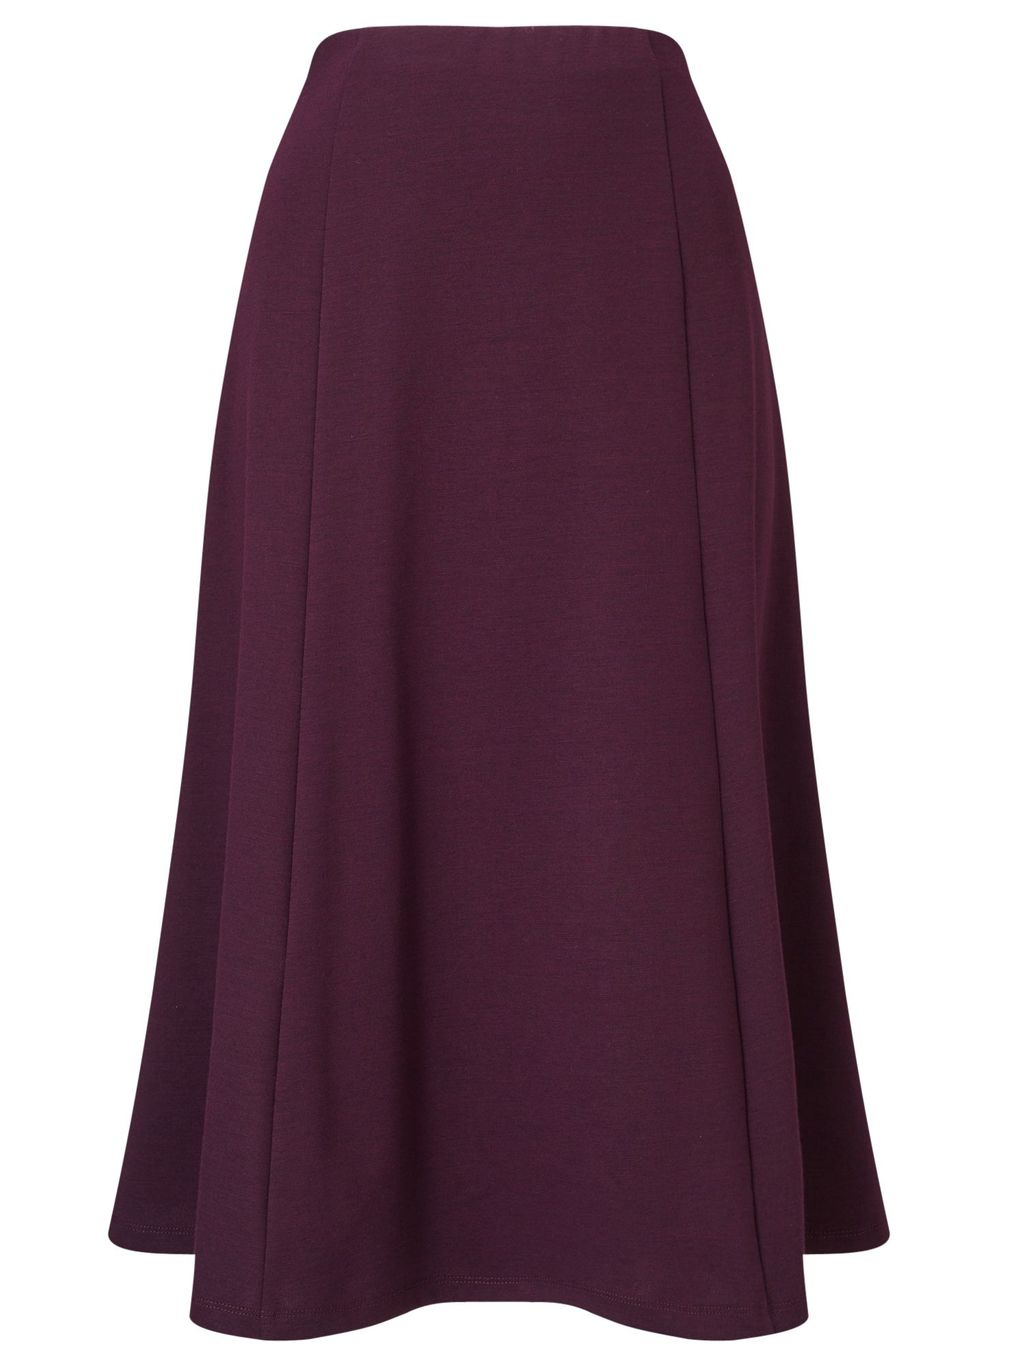 Aubergine Ponte Skirt Shorter, Purple - length: calf length; pattern: plain; fit: loose/voluminous; waist detail: fitted waist; waist: high rise; predominant colour: aubergine; style: a-line; fibres: polyester/polyamide - 100%; occasions: occasion; pattern type: fabric; texture group: other - light to midweight; season: s/s 2016; wardrobe: event